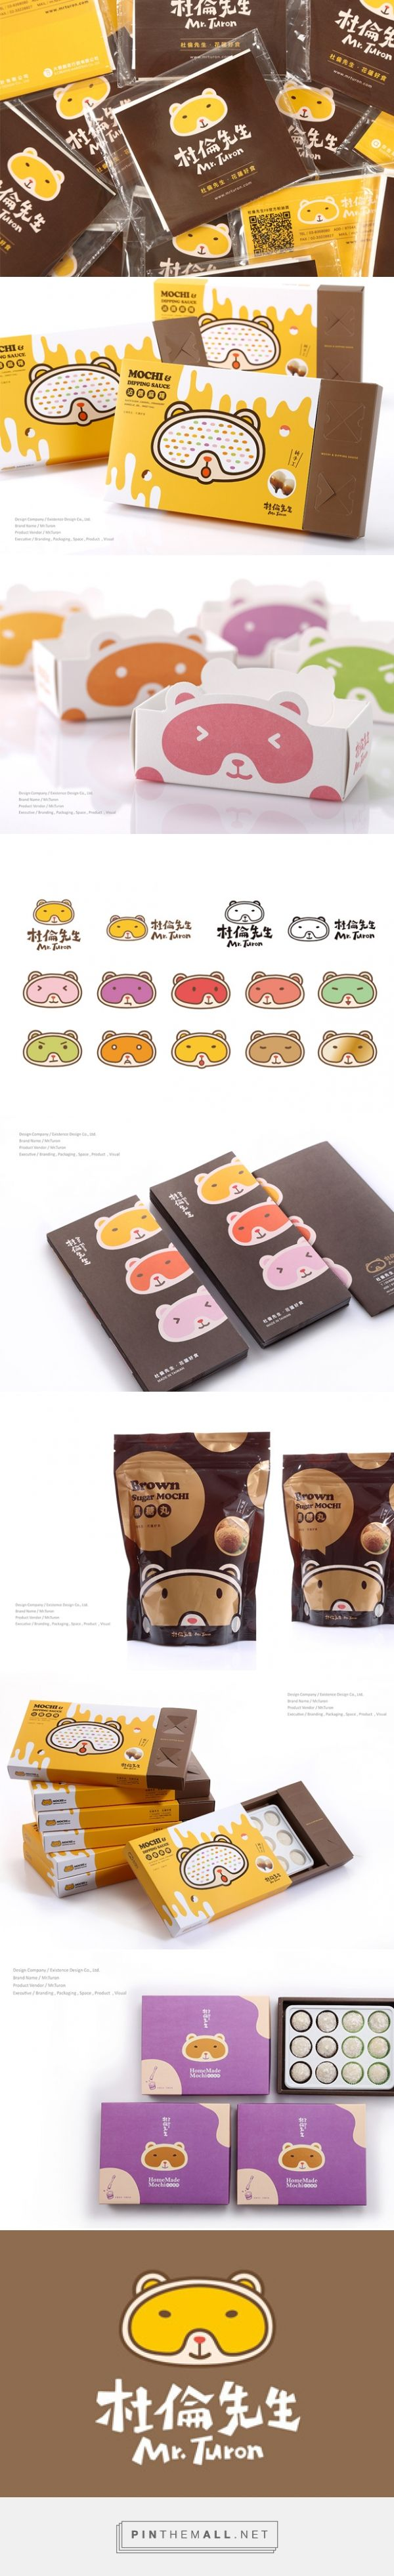 杜倫先生品牌規劃  | 存在設計 @ Design Group curated by Packaging Diva PD. Cute Mr. Turon products for the packaging smile file : )